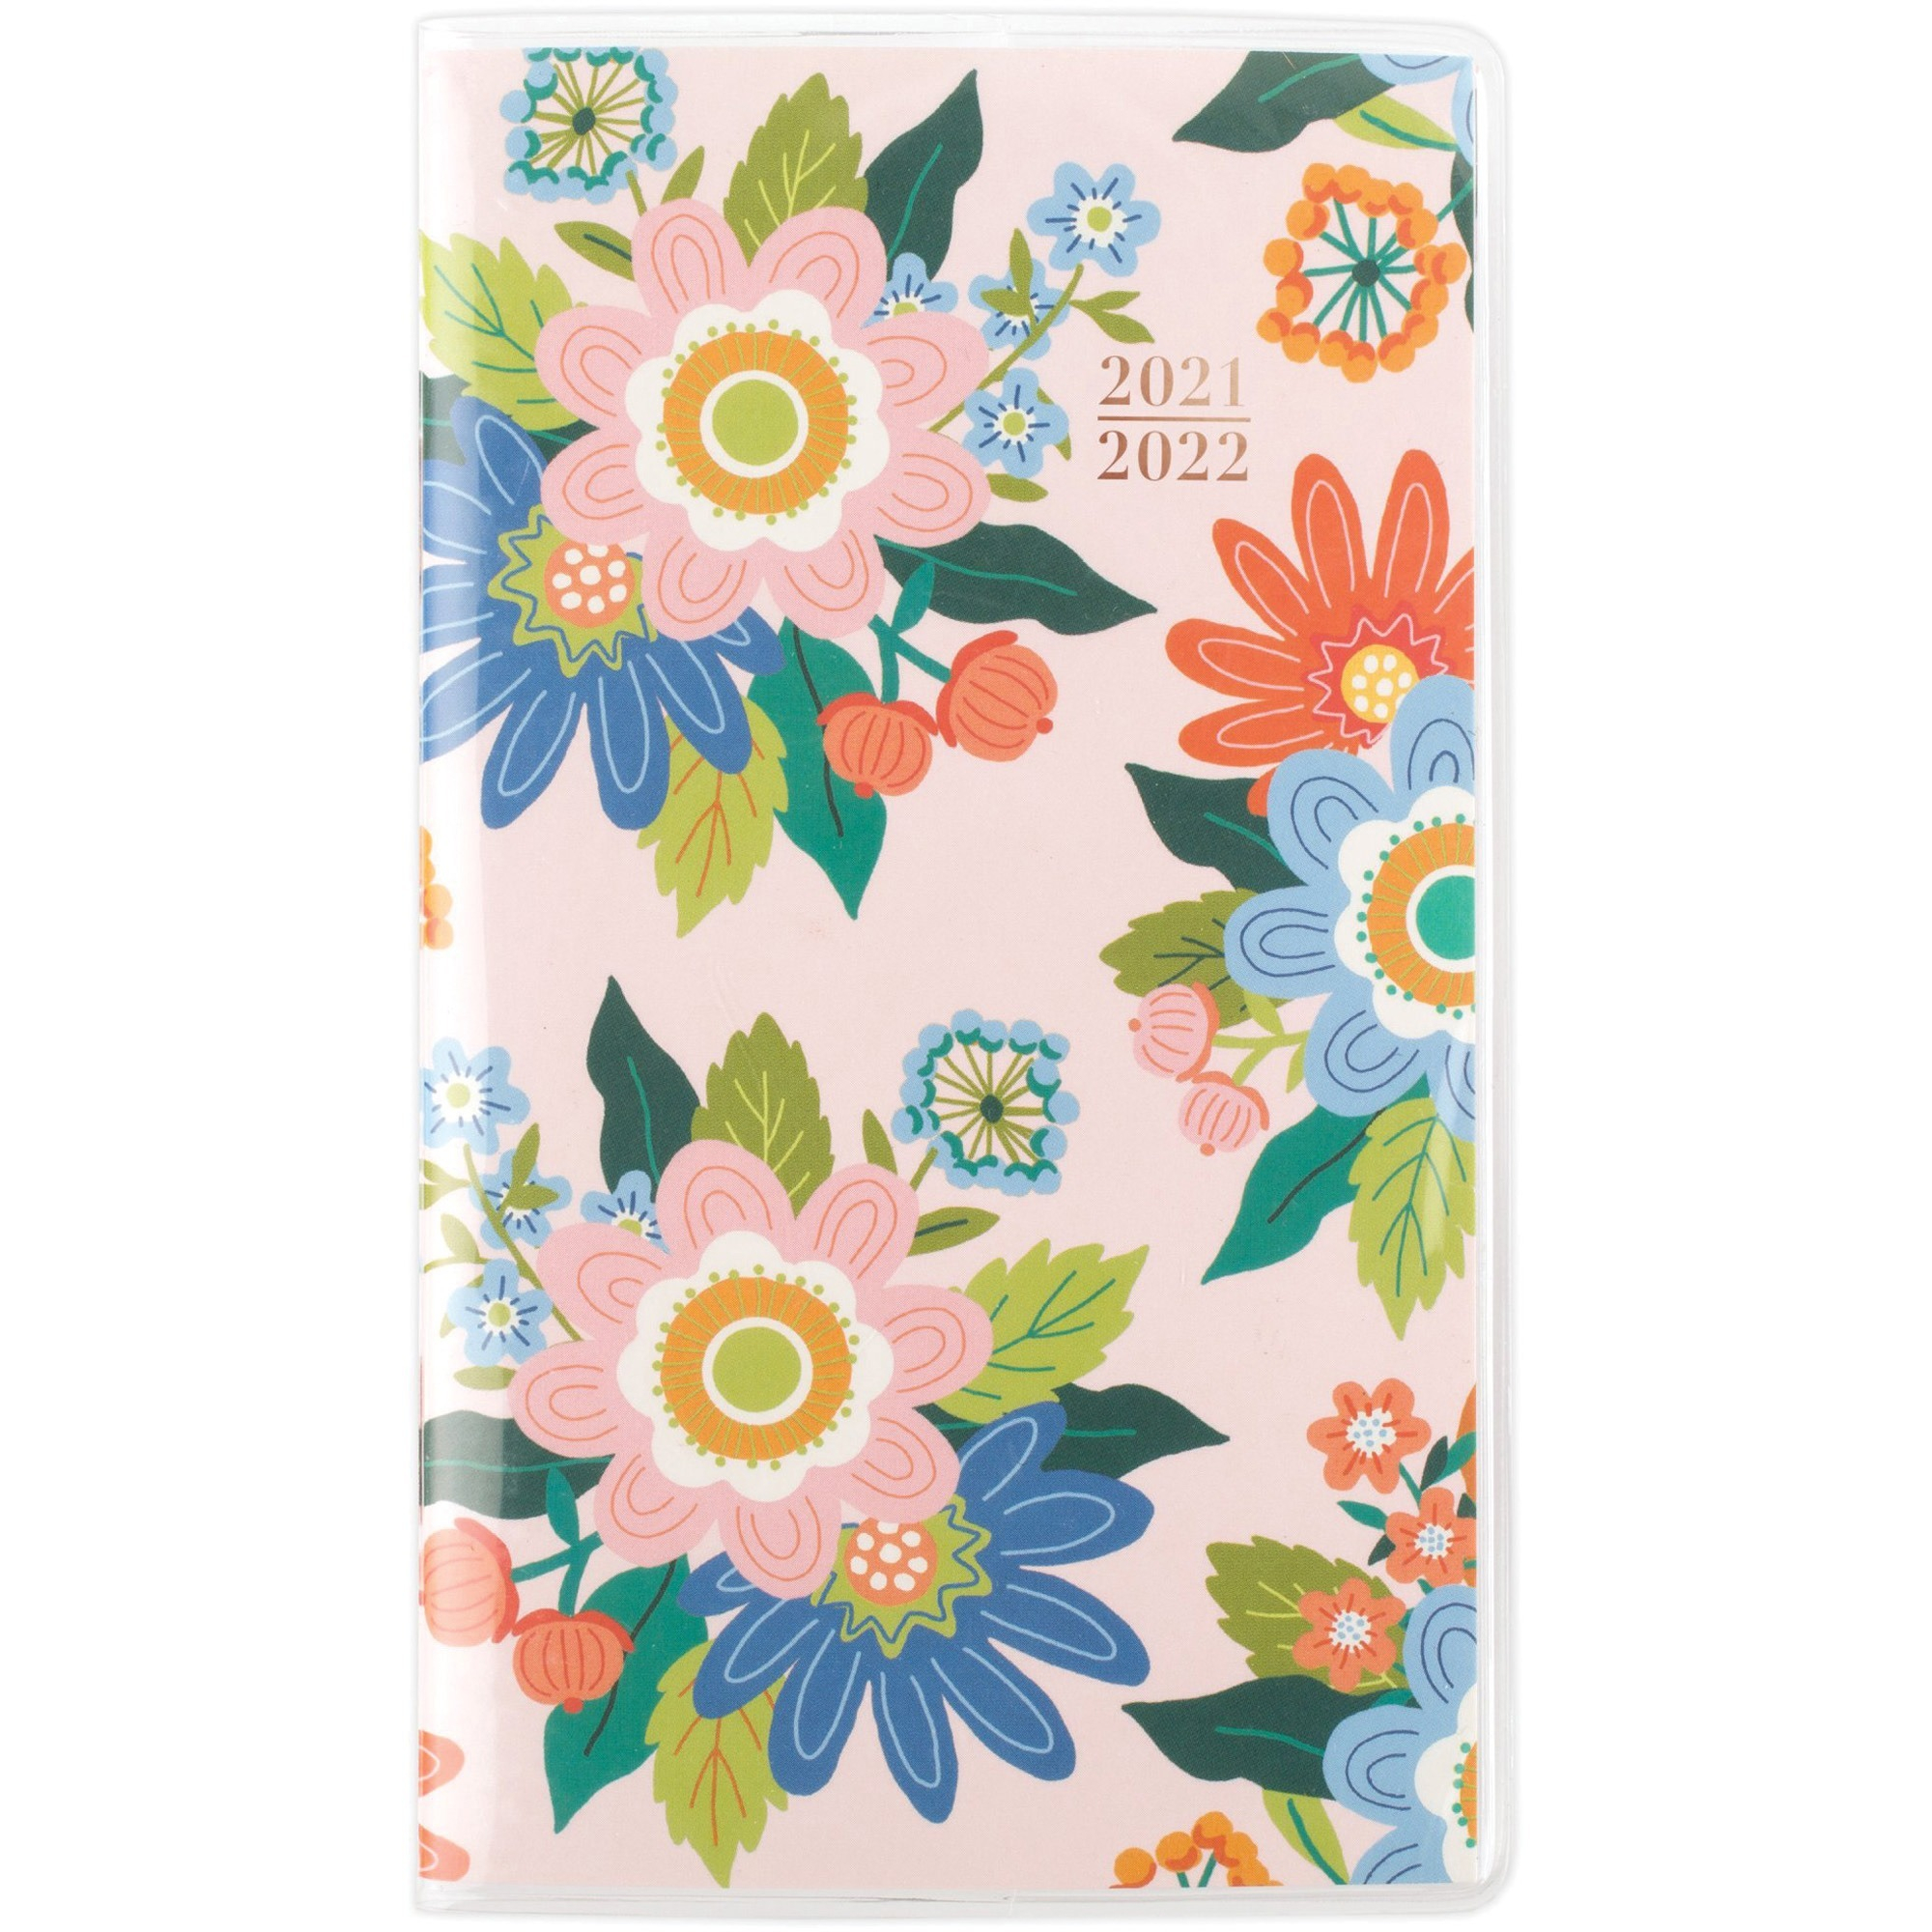 At-A-Glance Juliet Monthly Pocket Planner with regard to 2021-2022 Monthly Planner: Sunflowers